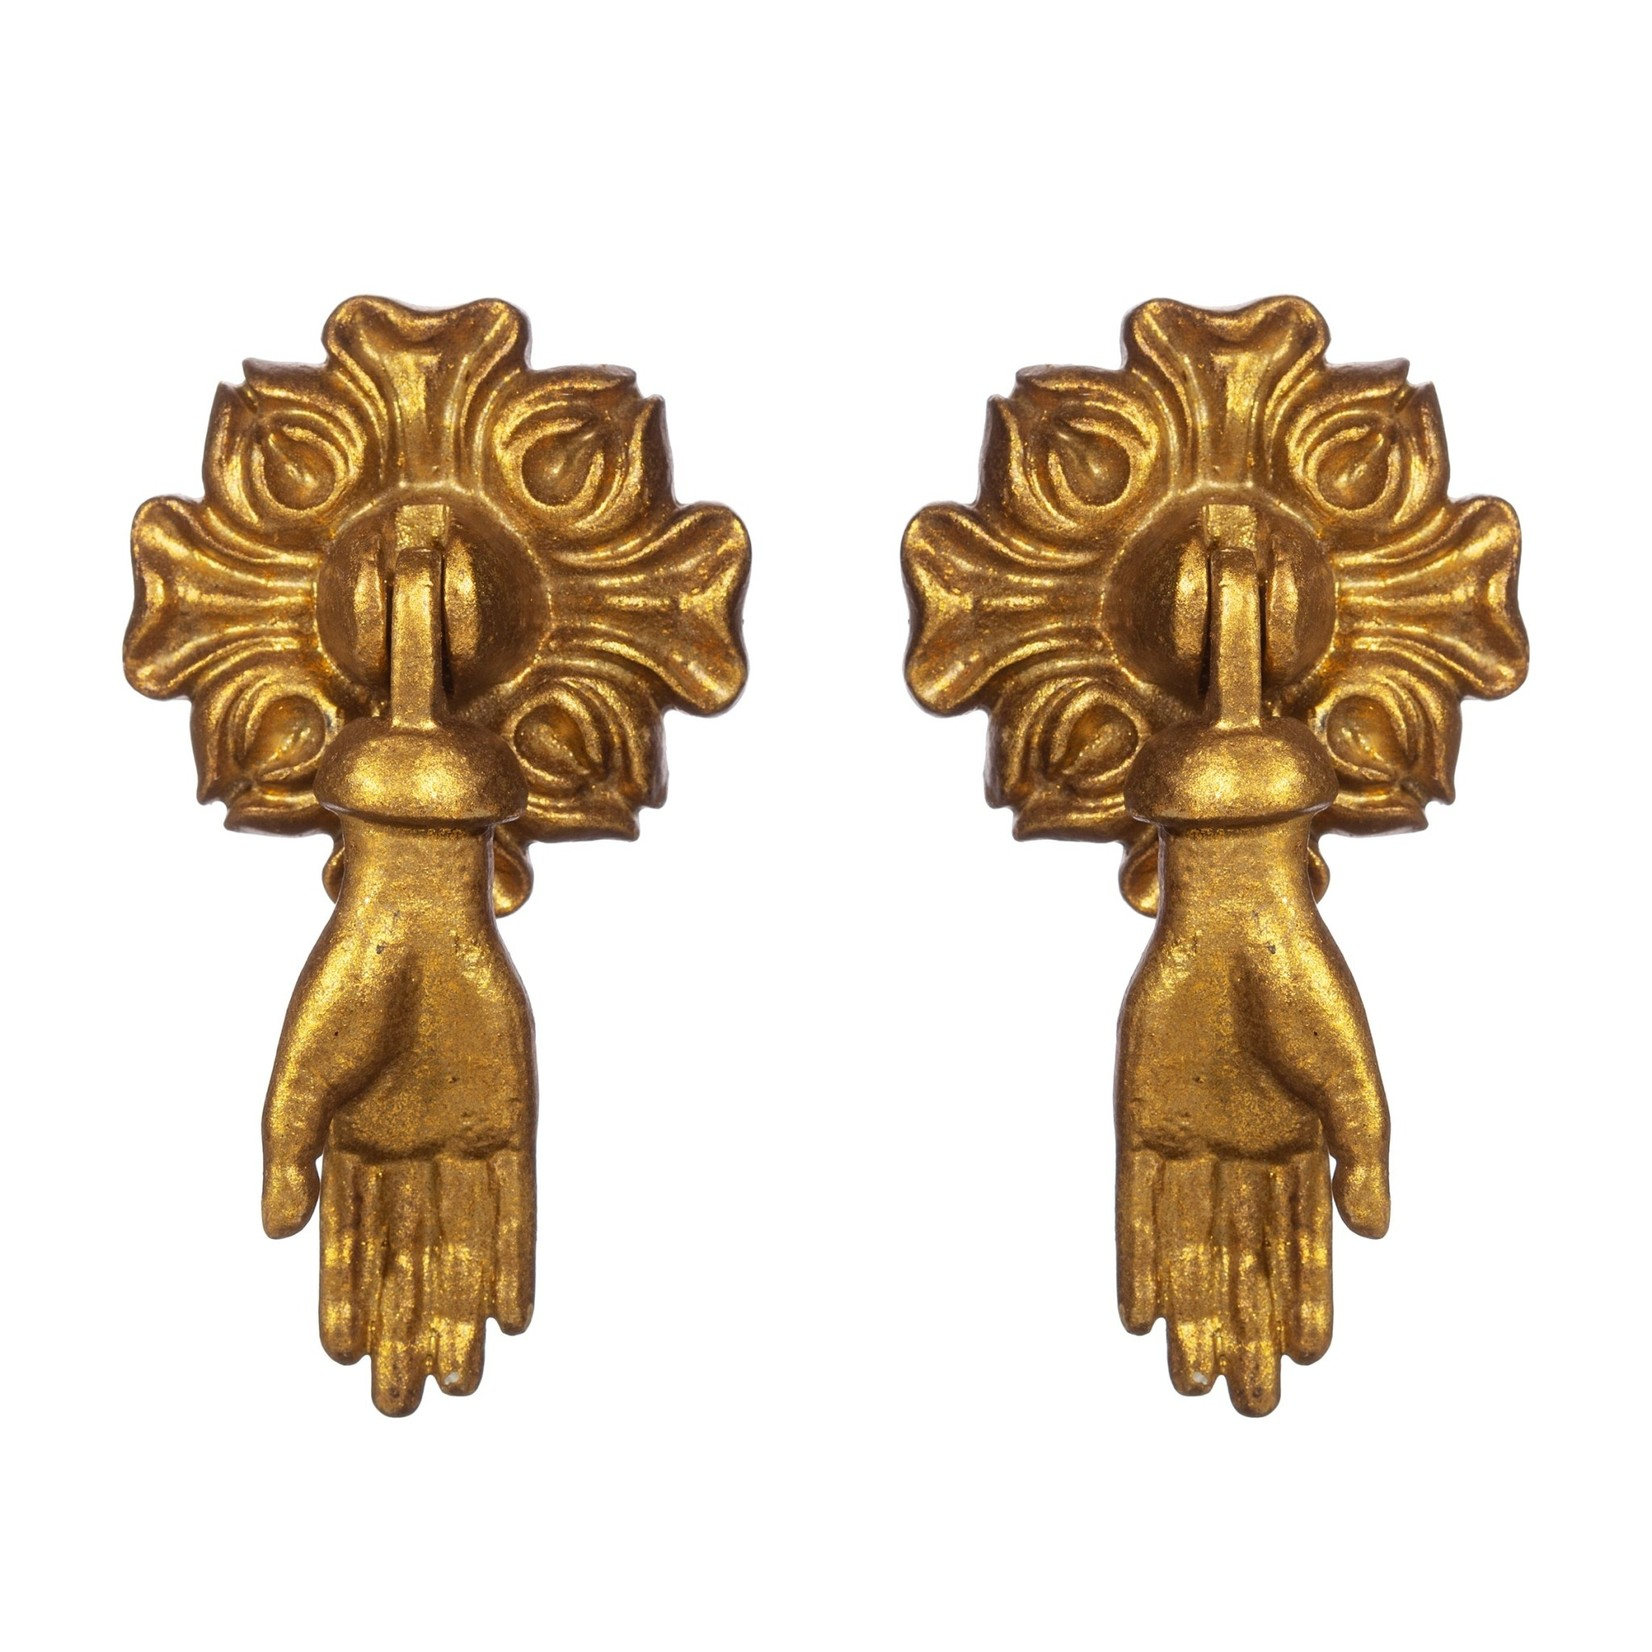 Sass and Belle Gold Hands Pendant Drawer Knobs - Set of 2